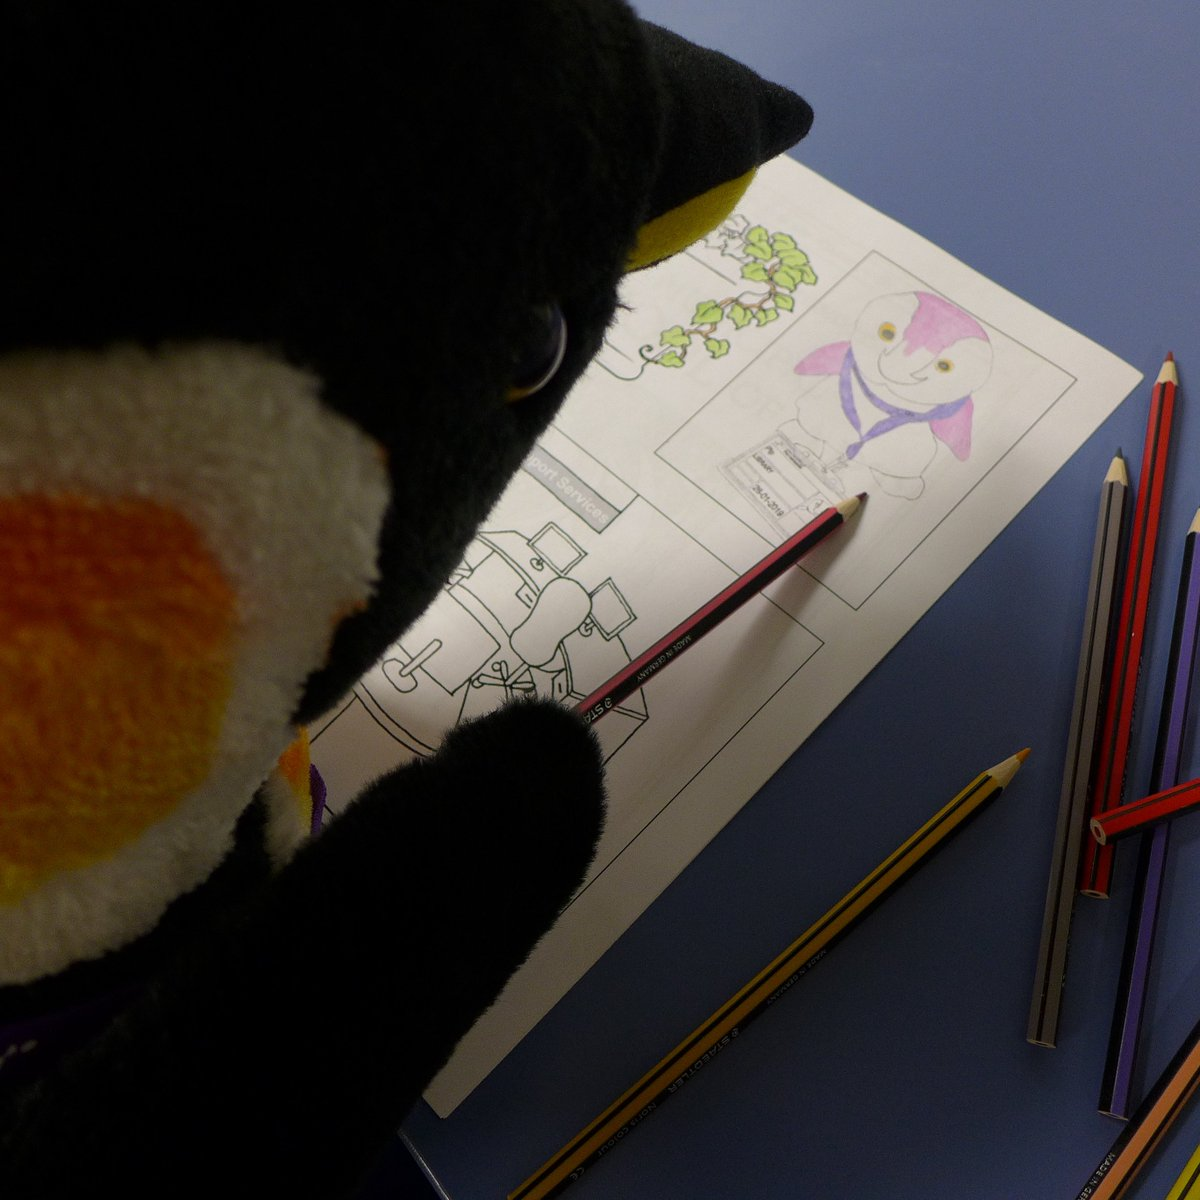 Pablo Penguin (@uoppenguin on Twitter) colouring in a book